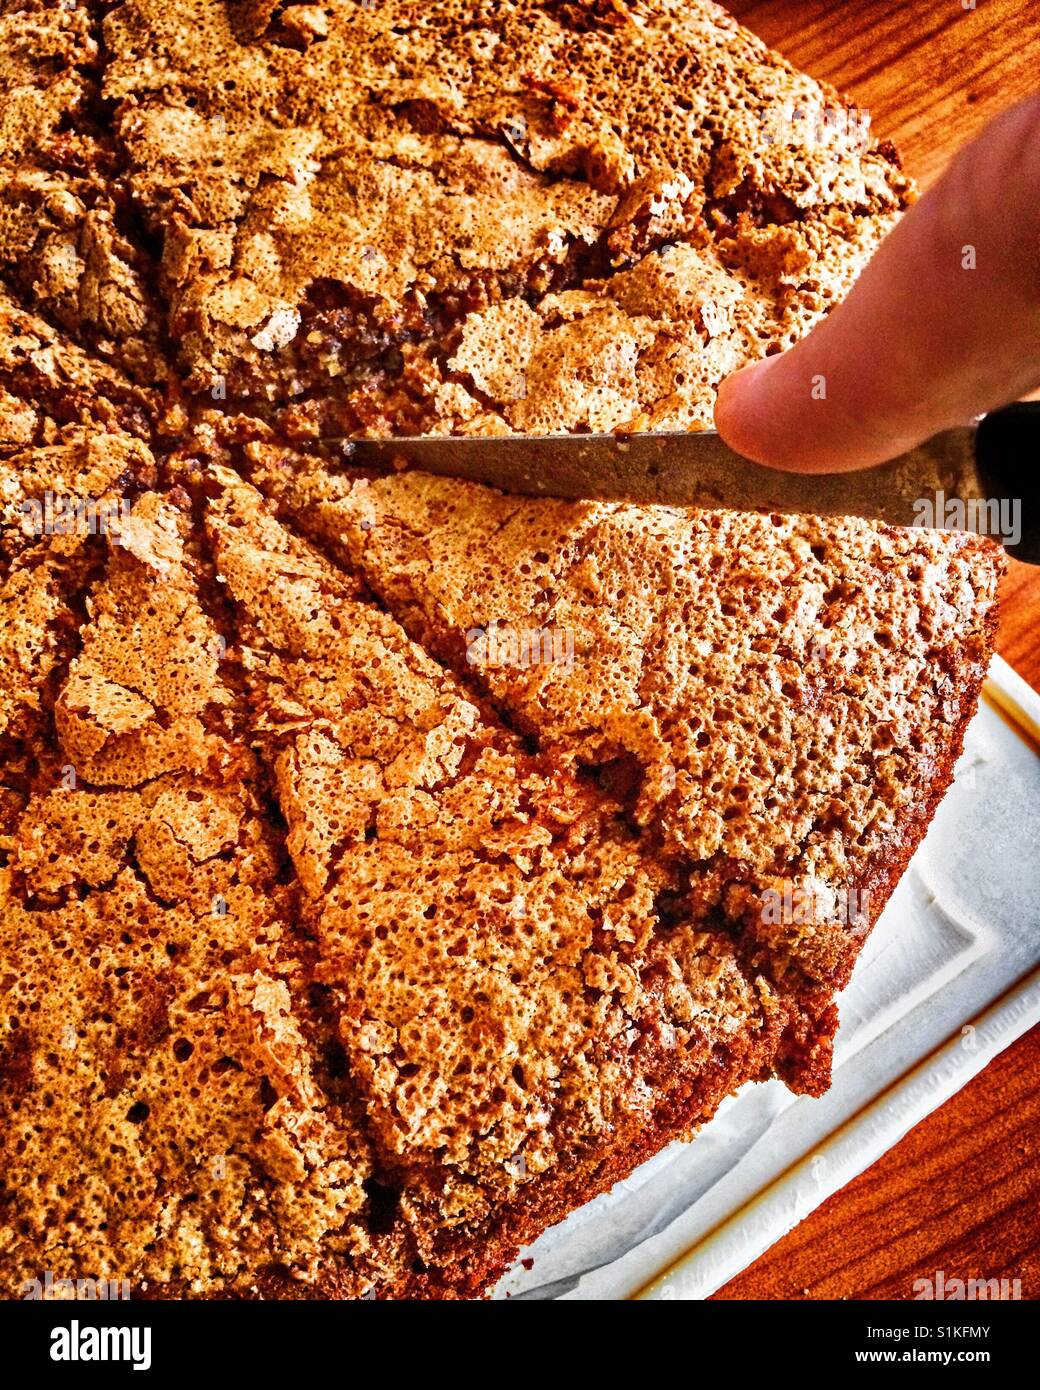 Woman hand with knife cutting homemade carrot cake - Stock Image